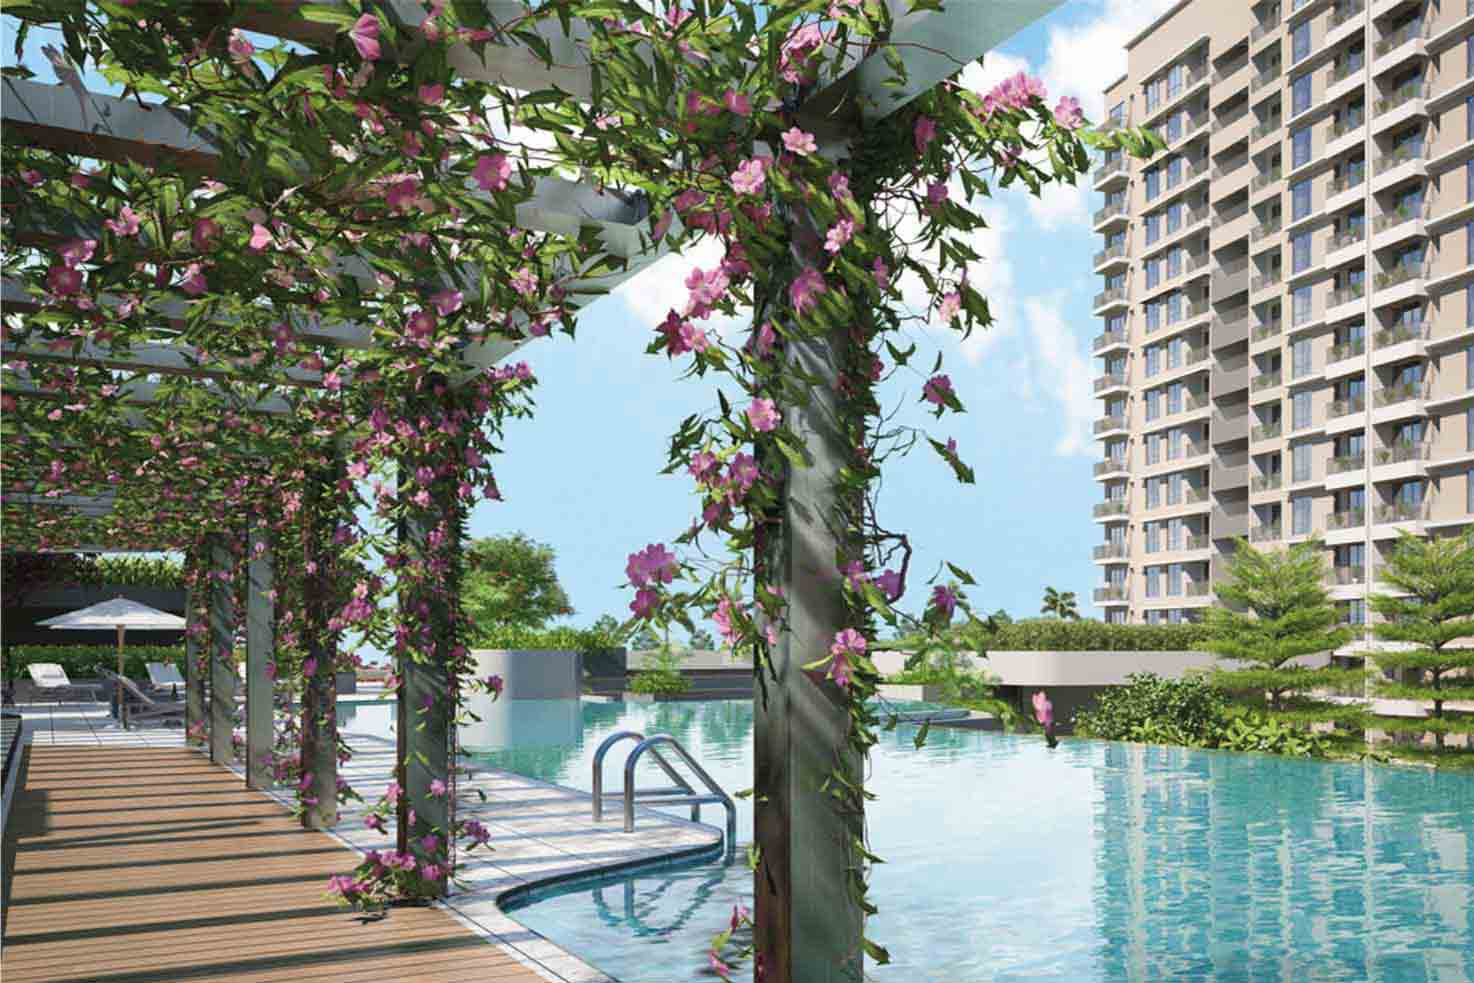 4 BHK Flats in New Town